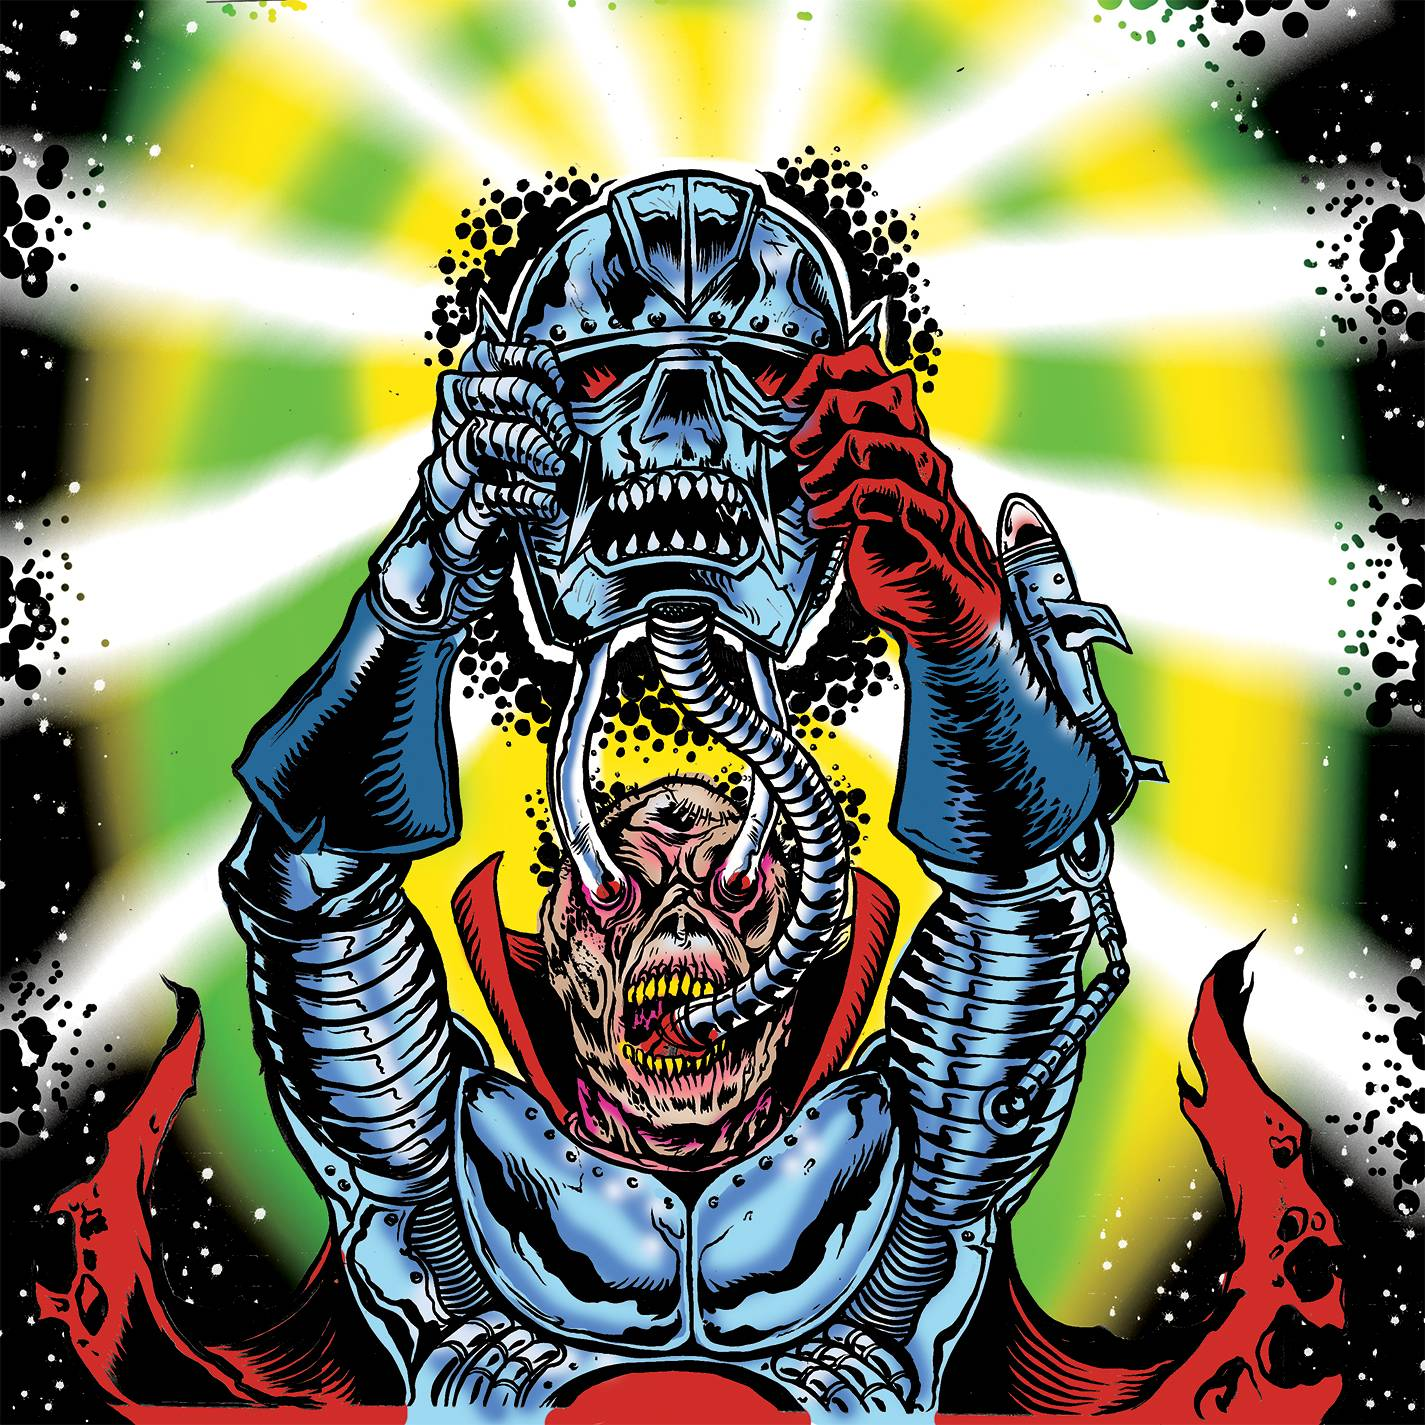 czarface-album-artwork-02